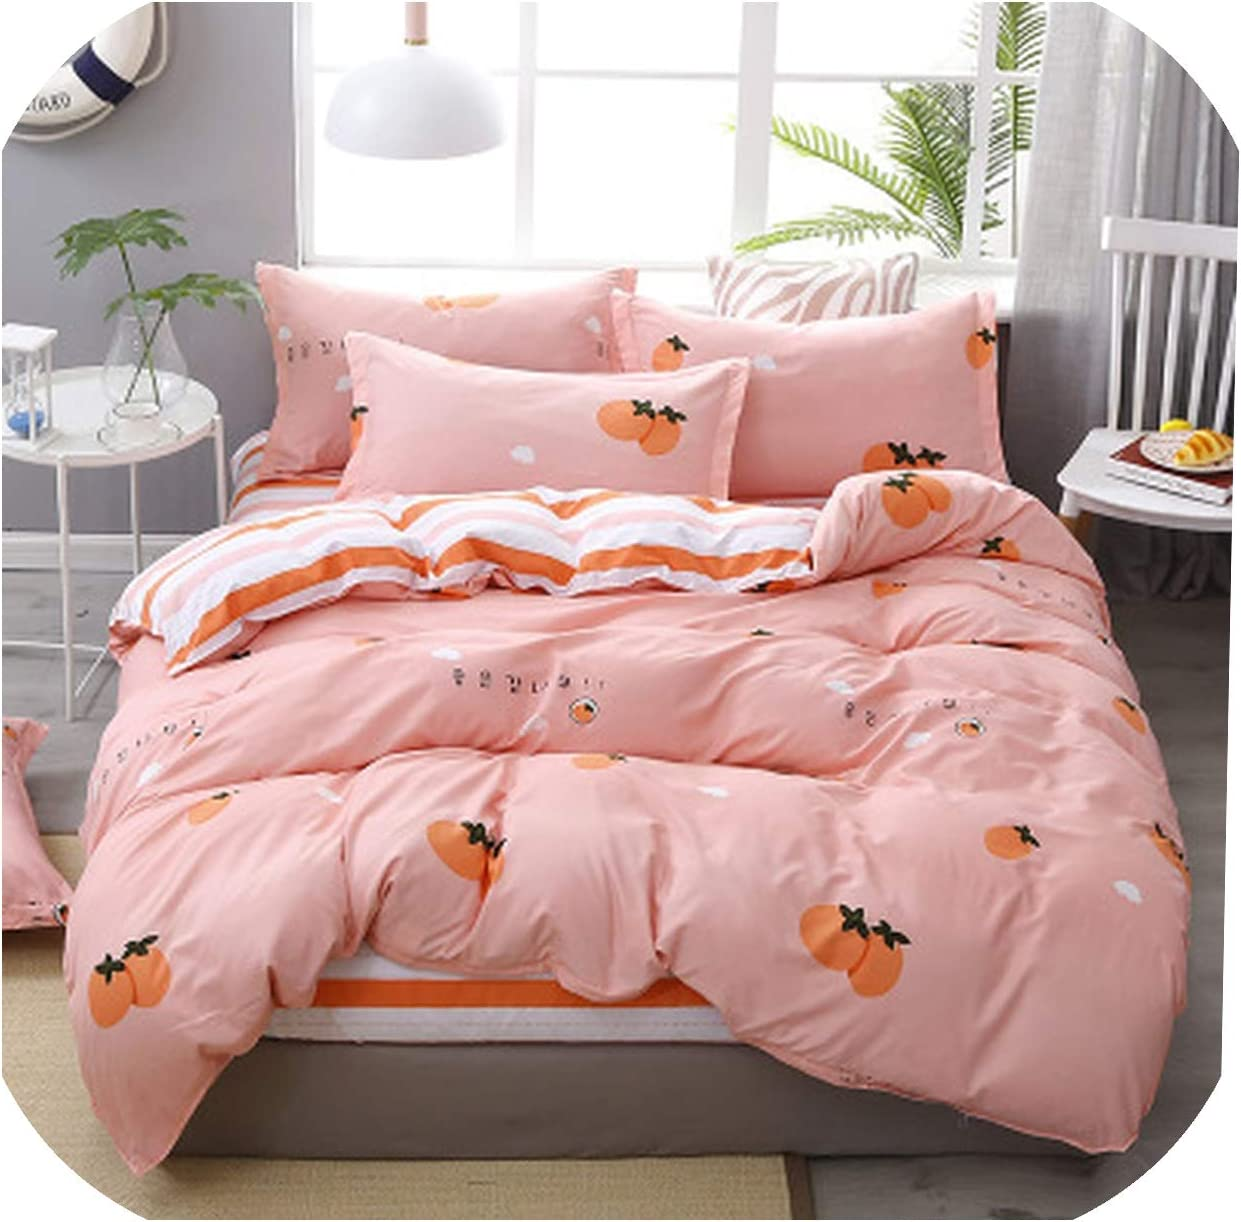 Amazon Com Visible Wind 4pcs Pink Strawberry Kawaii Bedding Set Luxury Queen Size Bed Sheets Children Quilt Soft Comforter Cotton Bedding Sets For Girl 05 King 2 0m Bed Home Kitchen